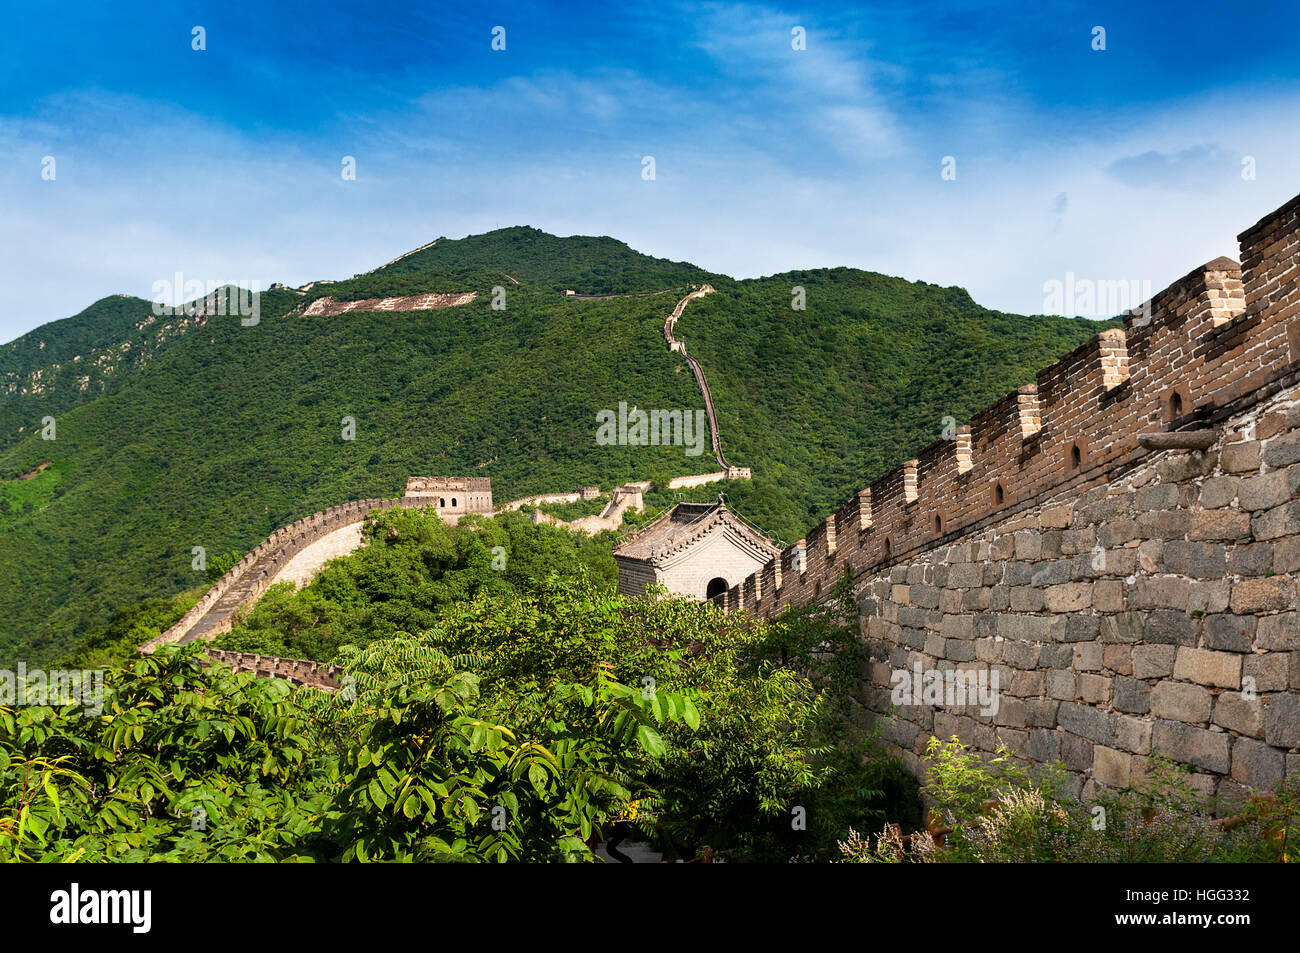 Vista de la Gran Muralla China en Mutianyu, China; concepto para viajar en China Foto de stock